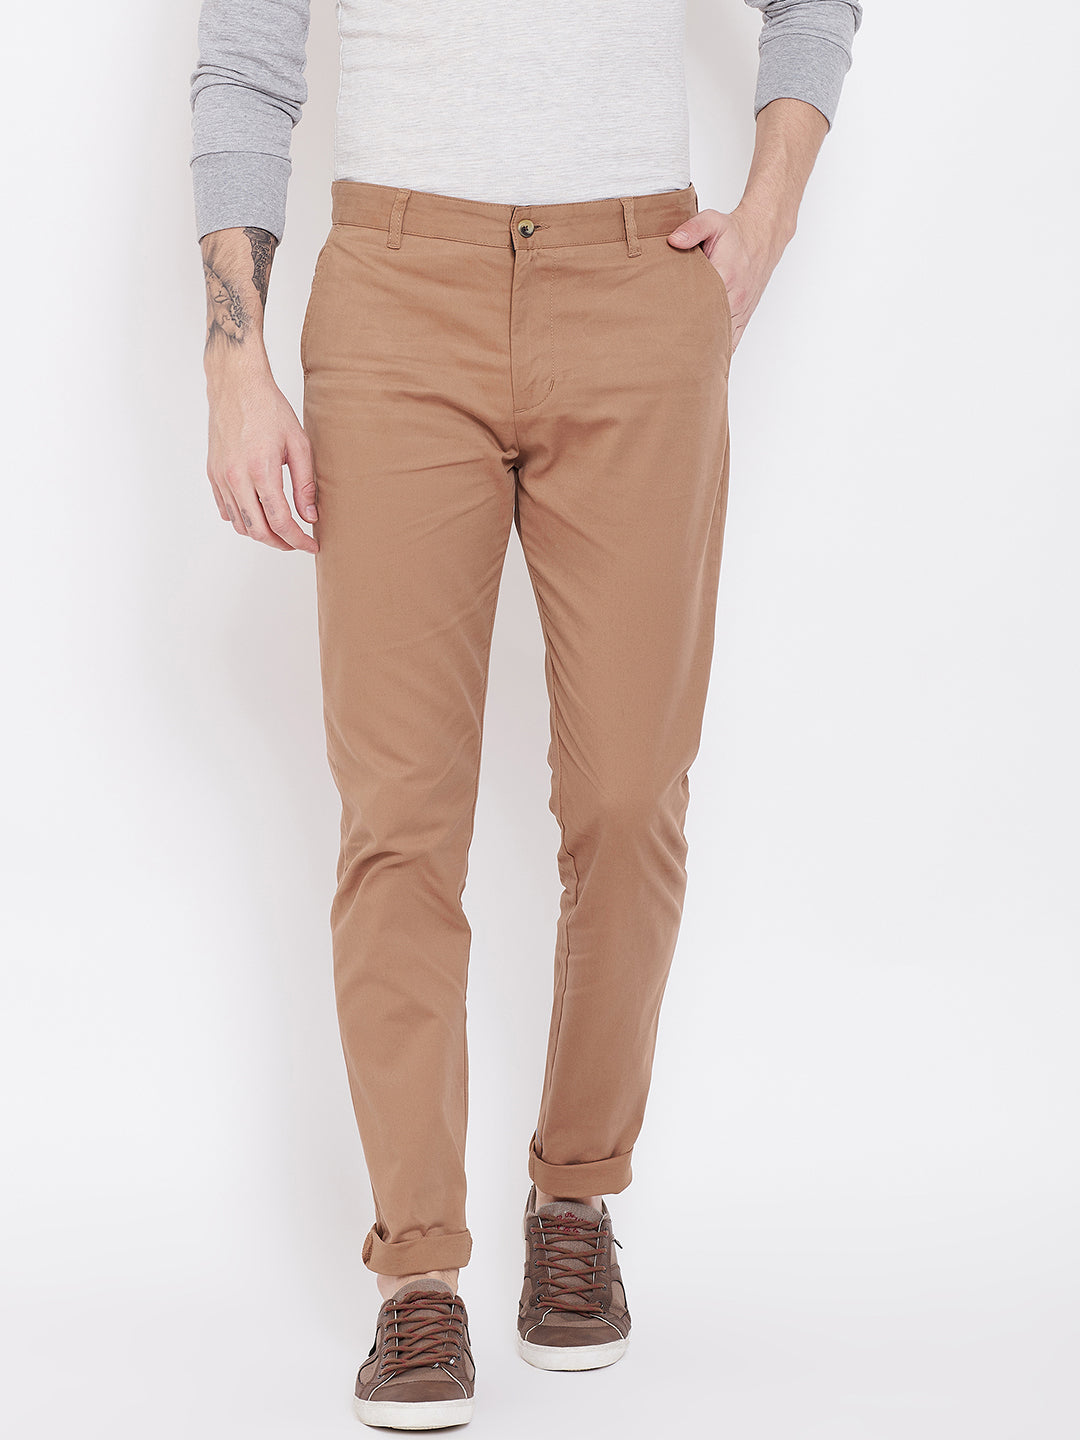 KROSSSTITCH Men's Cotton Brown Casual Slim Fit Stretchable Chinos